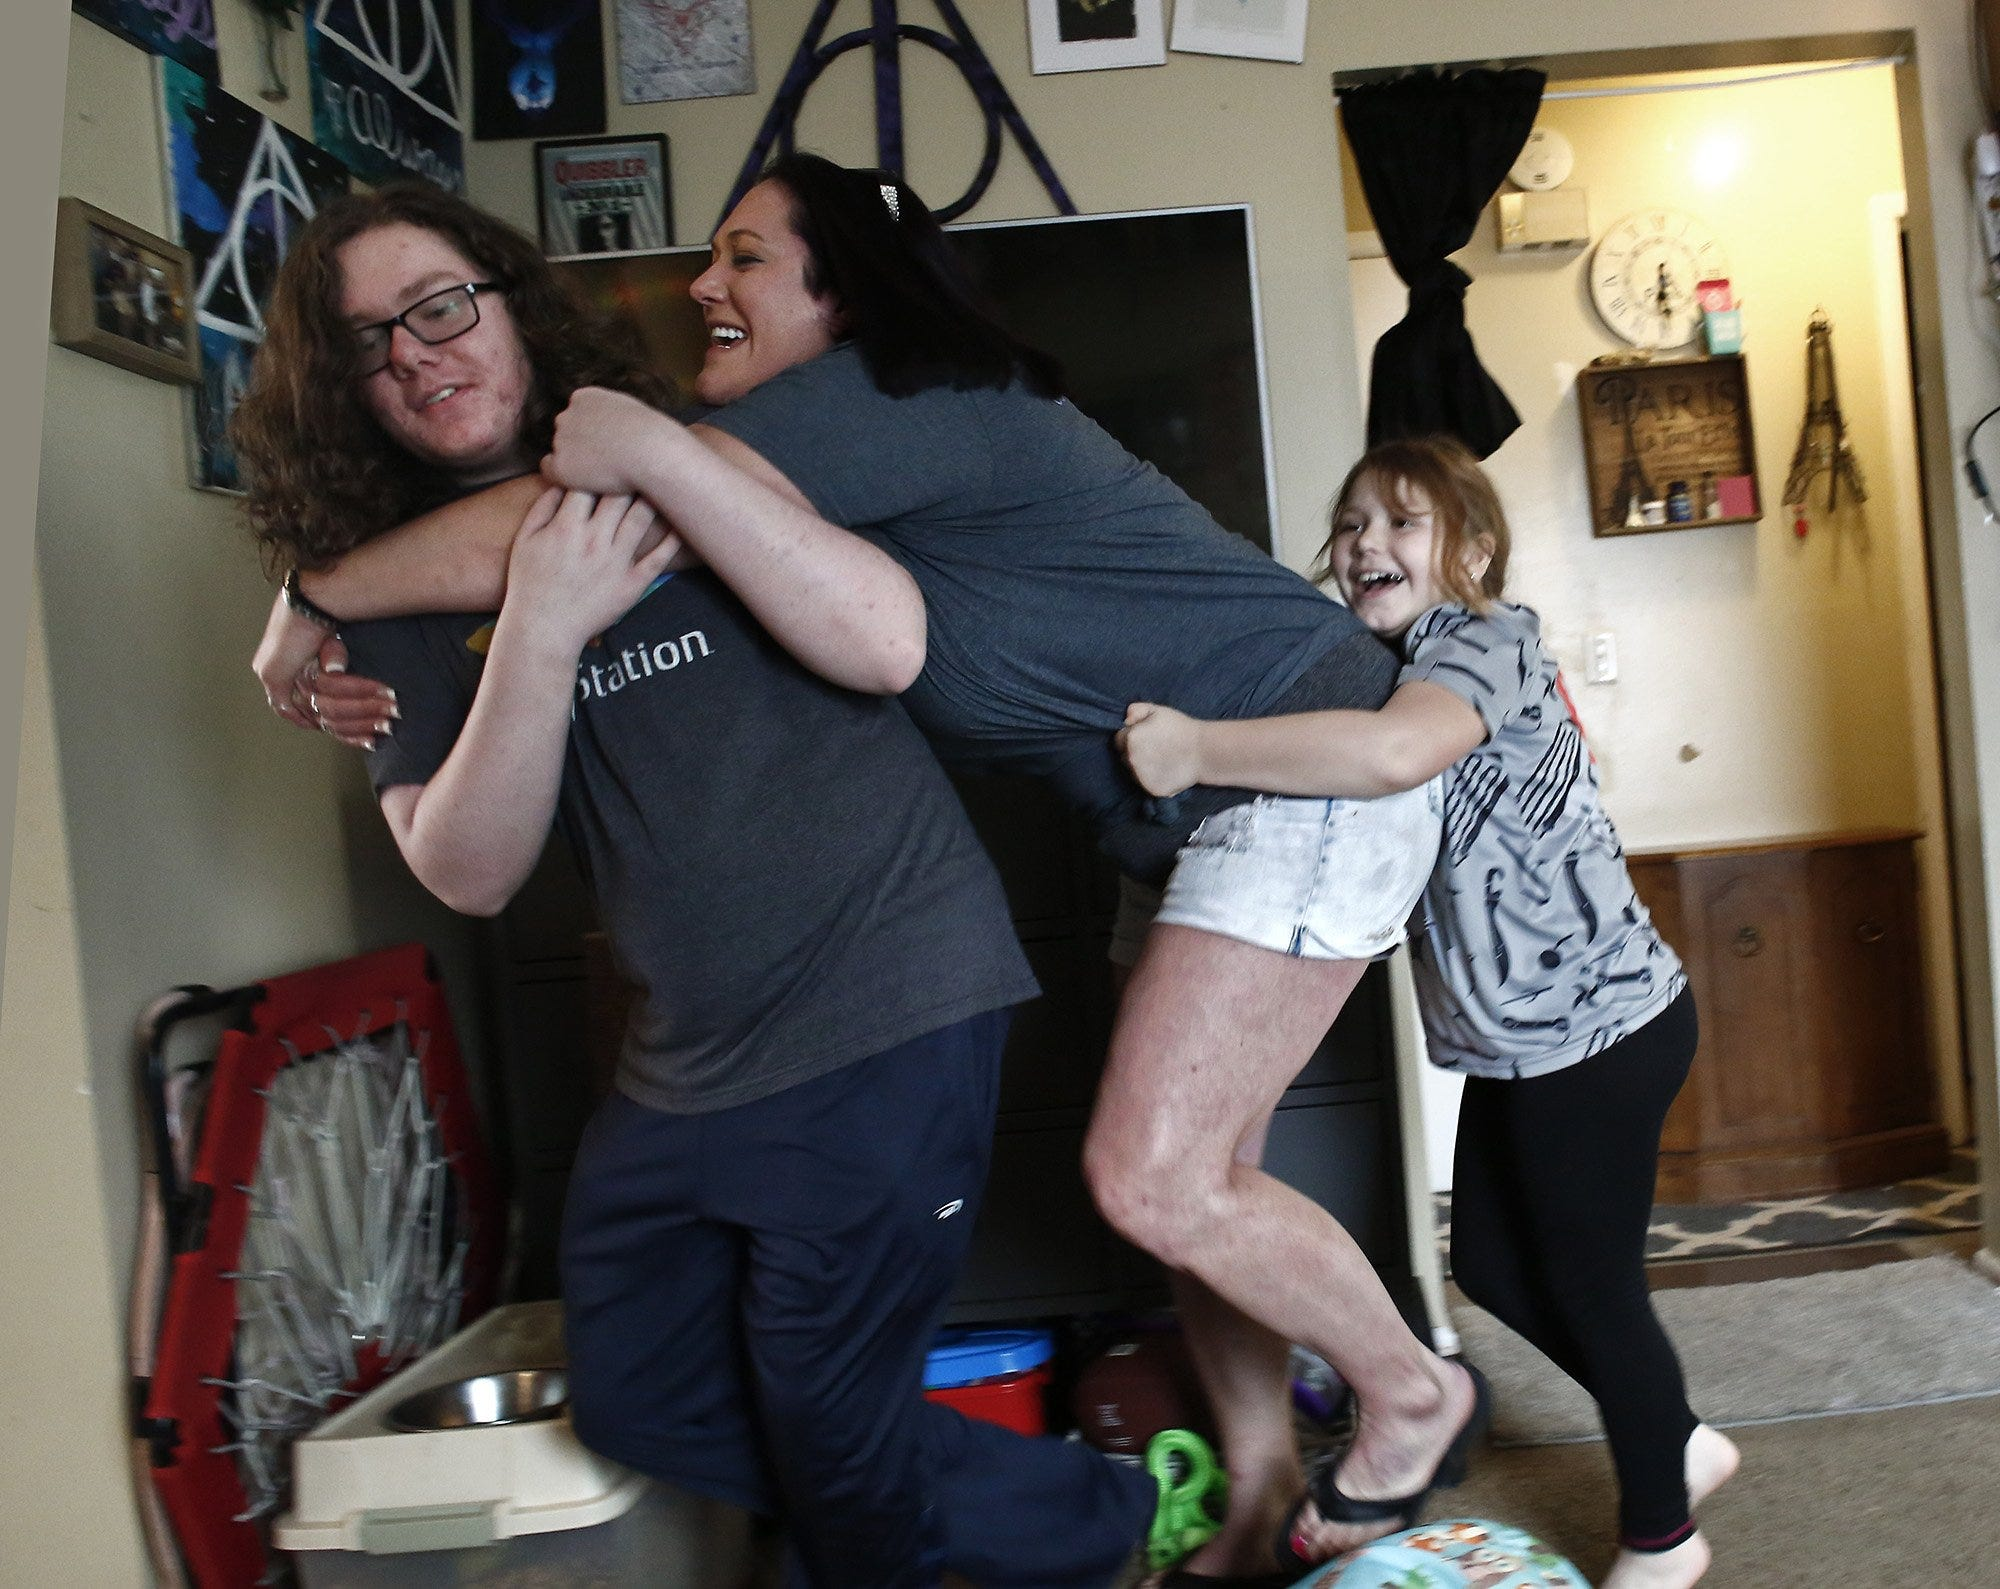 A group hug turns into a wrestling match between Sara Jucha, center; son, Kasey Burns, 15, left; and daughter Lily Jucha, 8, right on  April 8.